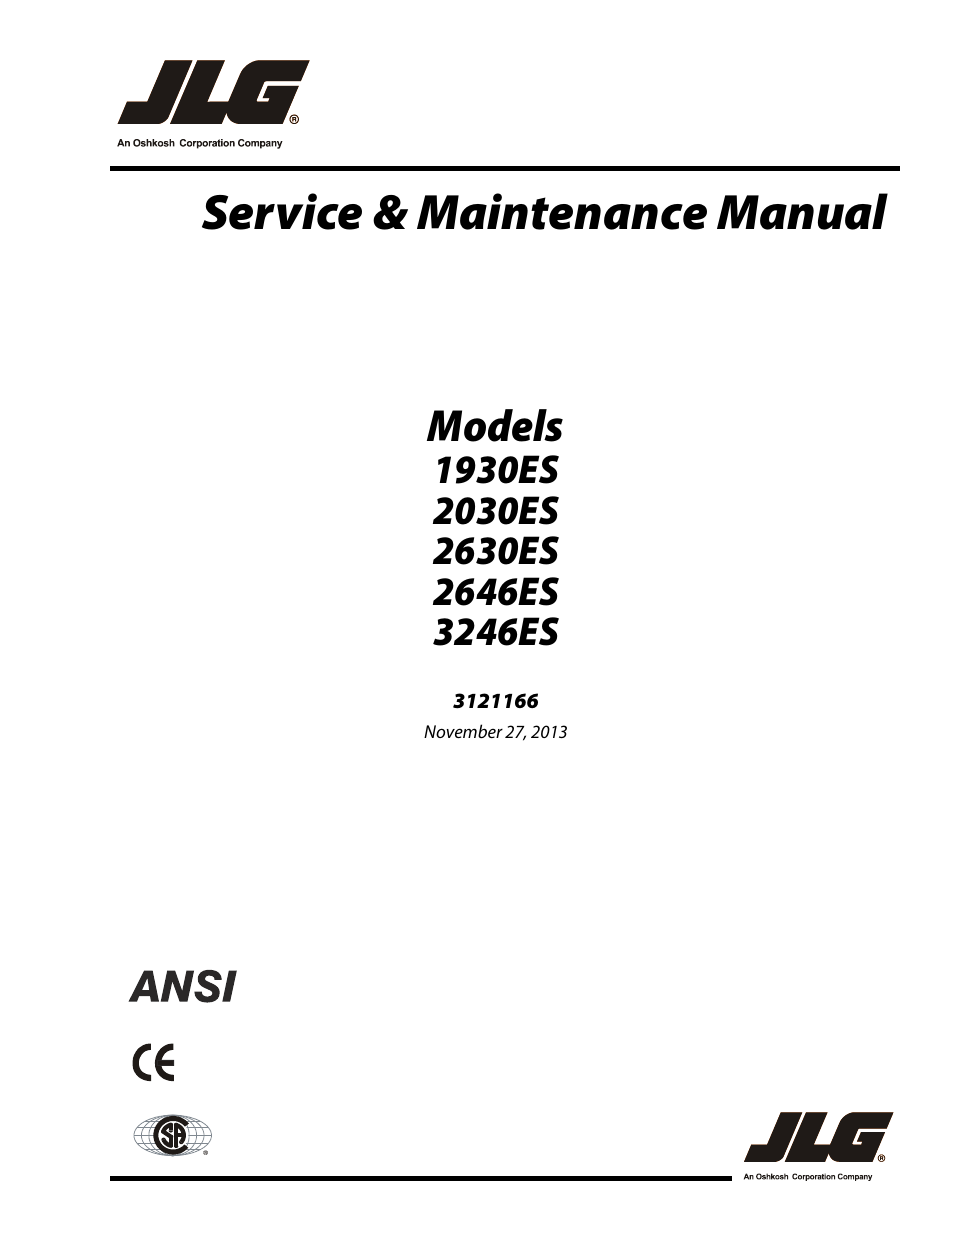 jlg wiring diagram jlg 3246es service manual user manual 222 pages also for jlg 3246es service manual user manual